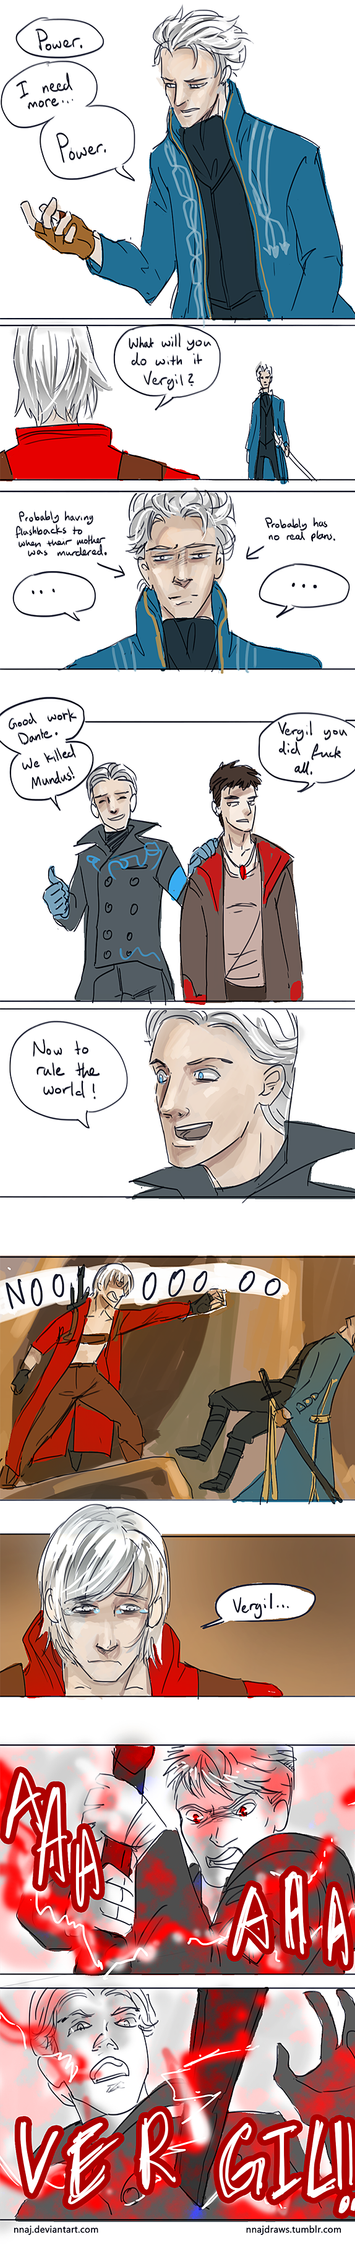 The difference between DMC and DmC by nnaj